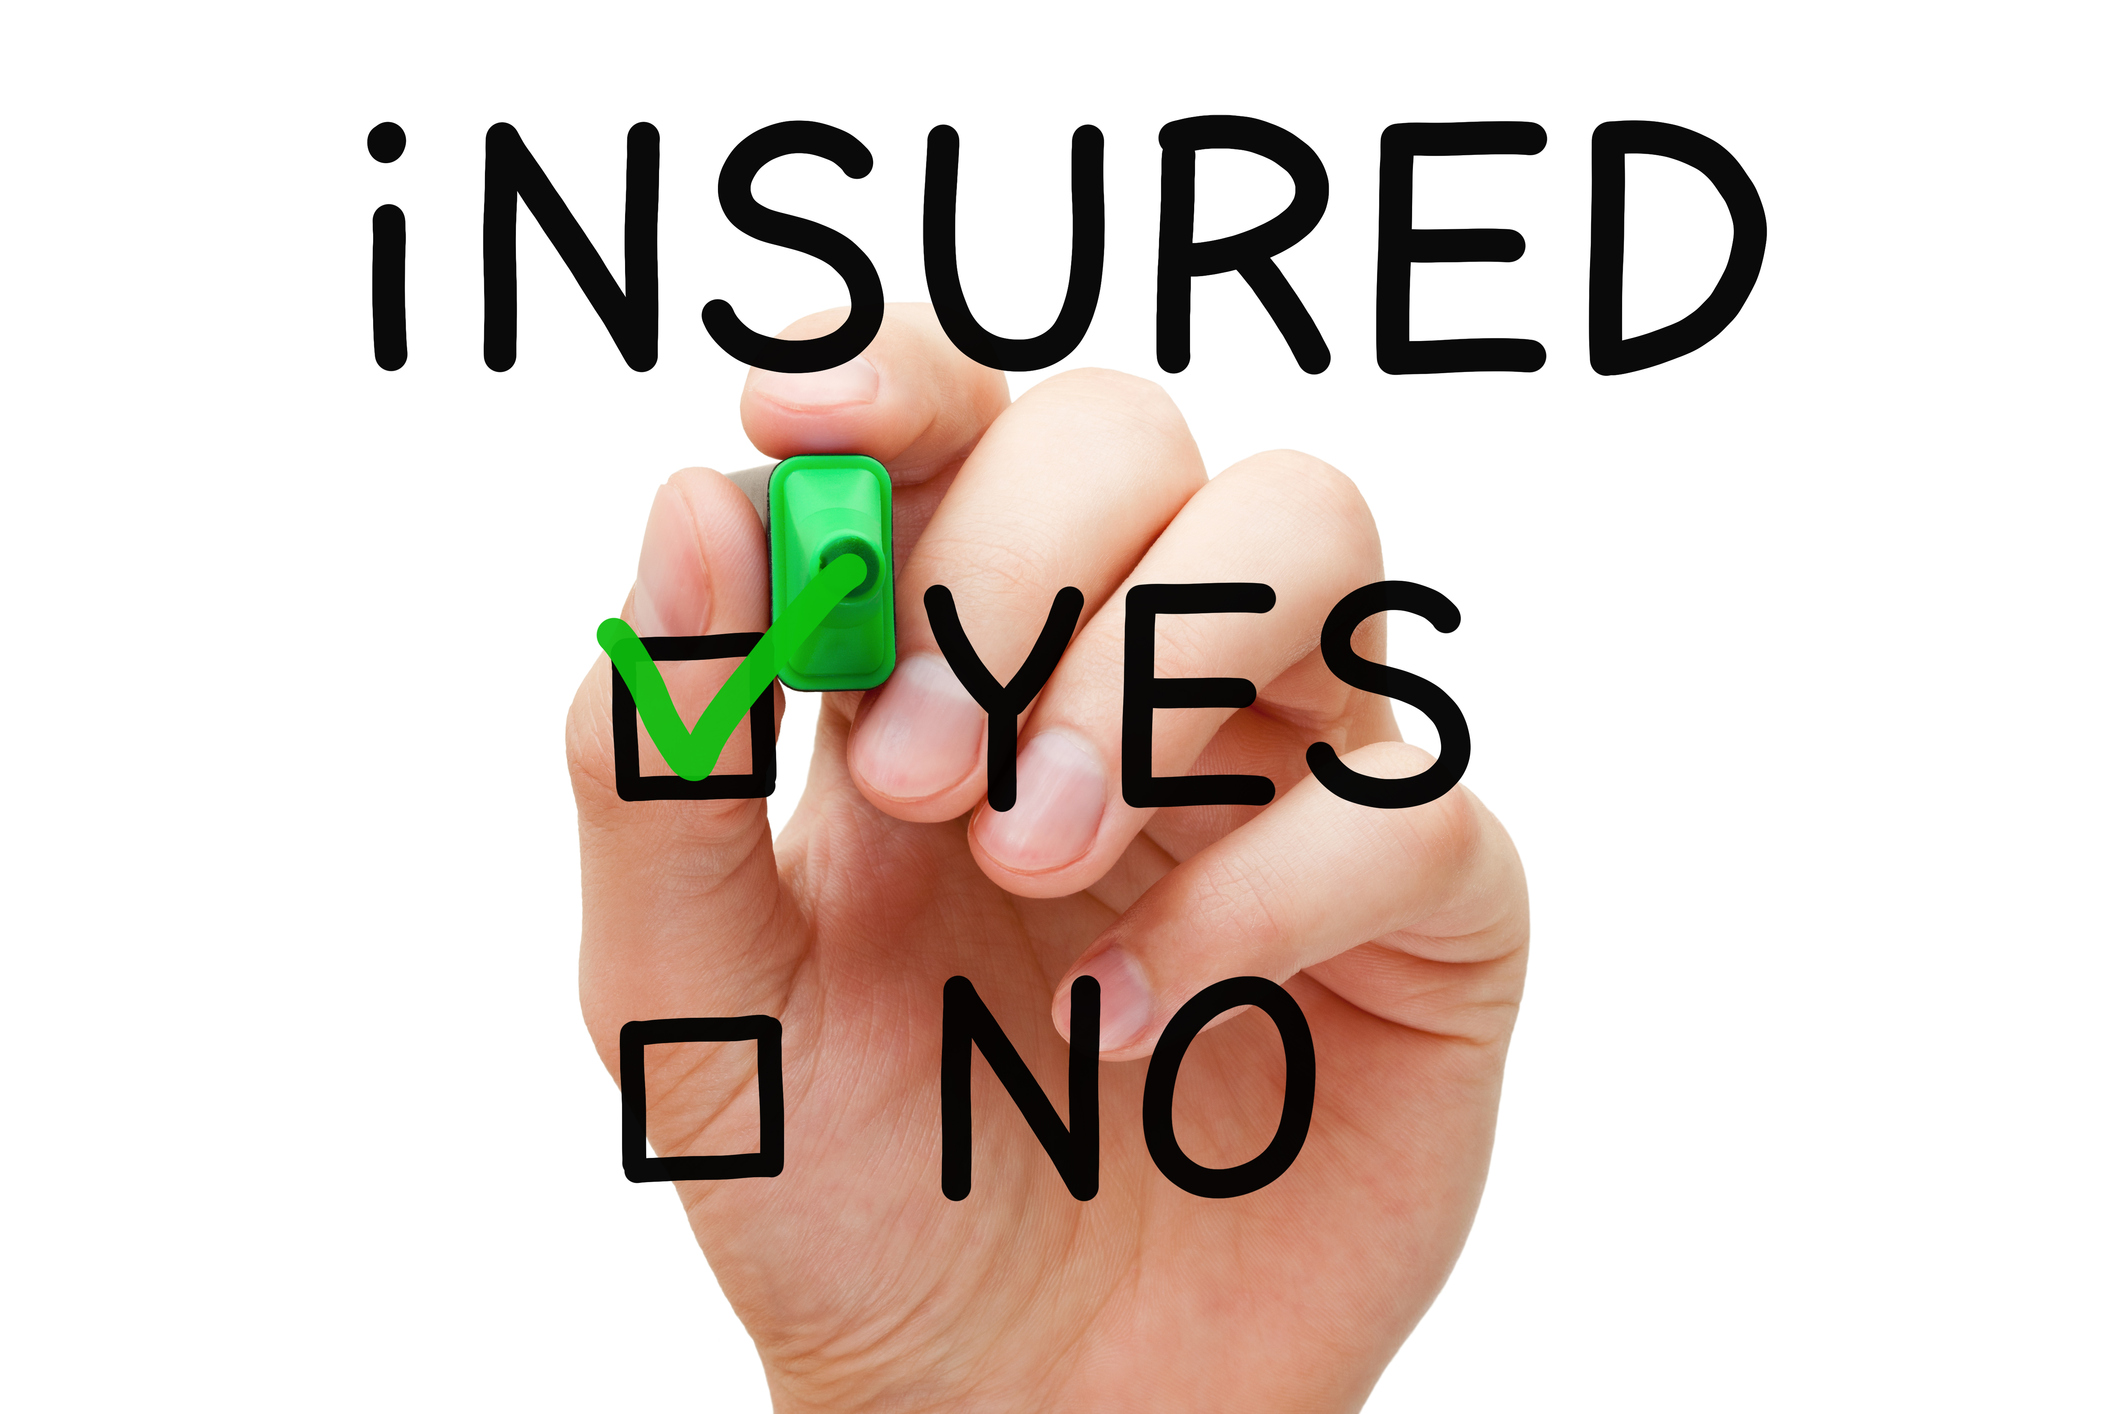 image of clear board insured yes or no question